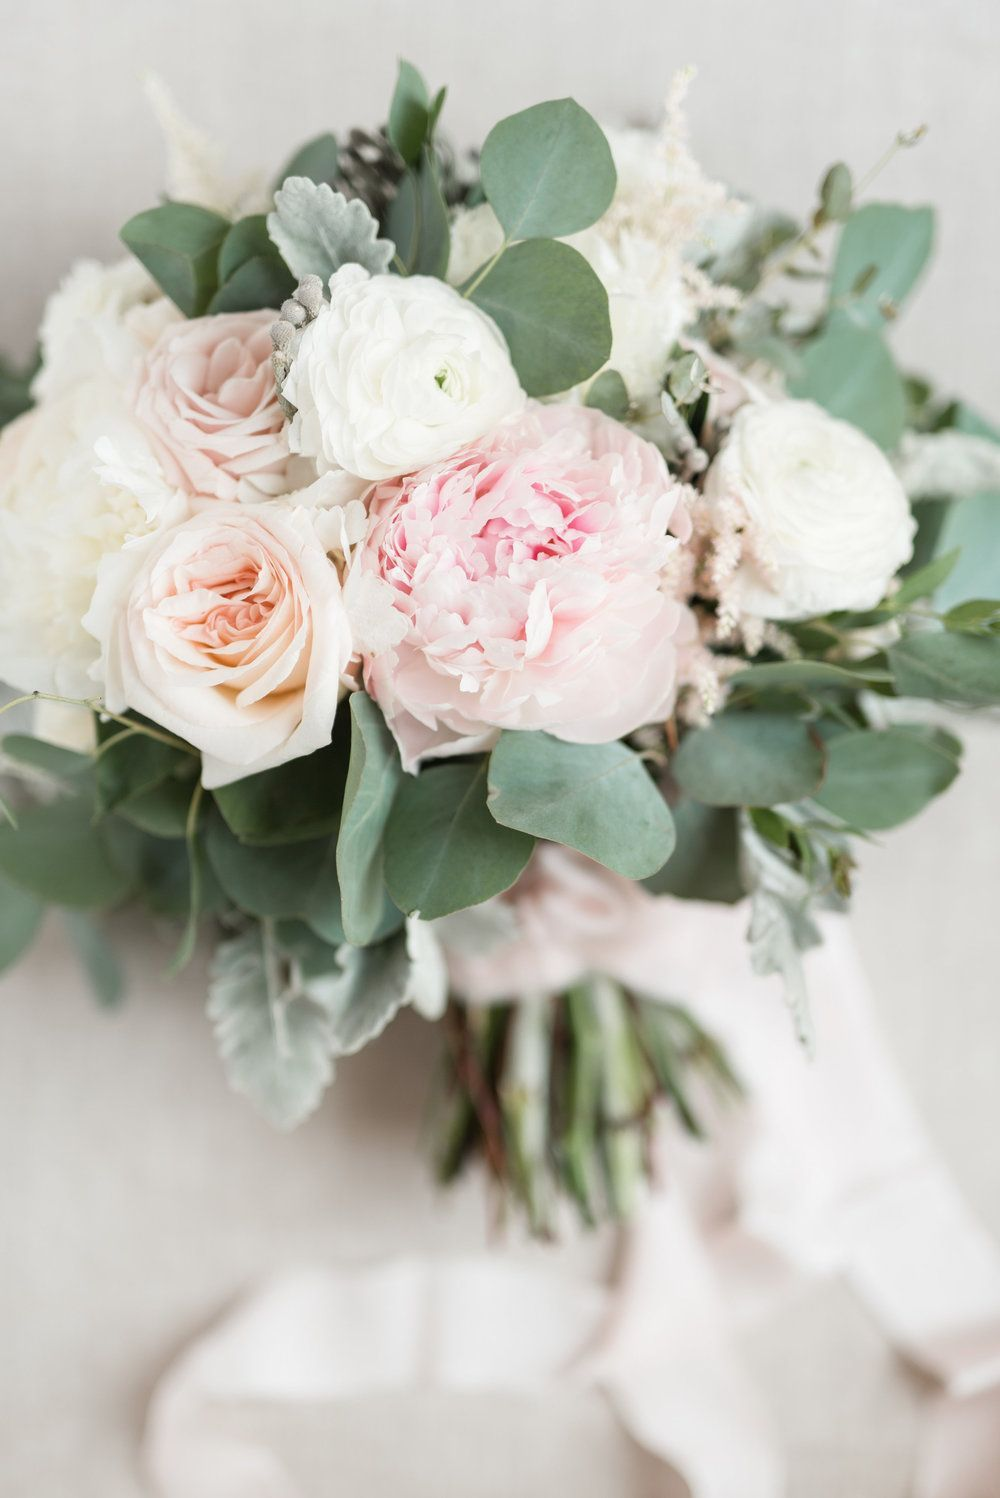 Audrey Rose Photography with Courtney Inghram Virginia Wedding Floral Designer at the Historic Post Office Wedding with blush and white bouquet with peony, ranunculus, eucalyptus greenery, blush silk ribbon streamers, dusty miller. Large fluffy bridal bouquet for blush and white Virginia wedding with floral design by Courtney Inghram. Peony bouquet. Peony bride bouquet. Peony wedding bouquet. June summer white and romantic blush wedding. Wedding bouquet with peony and eucalyptus greenery. #bridesmaidbouquets